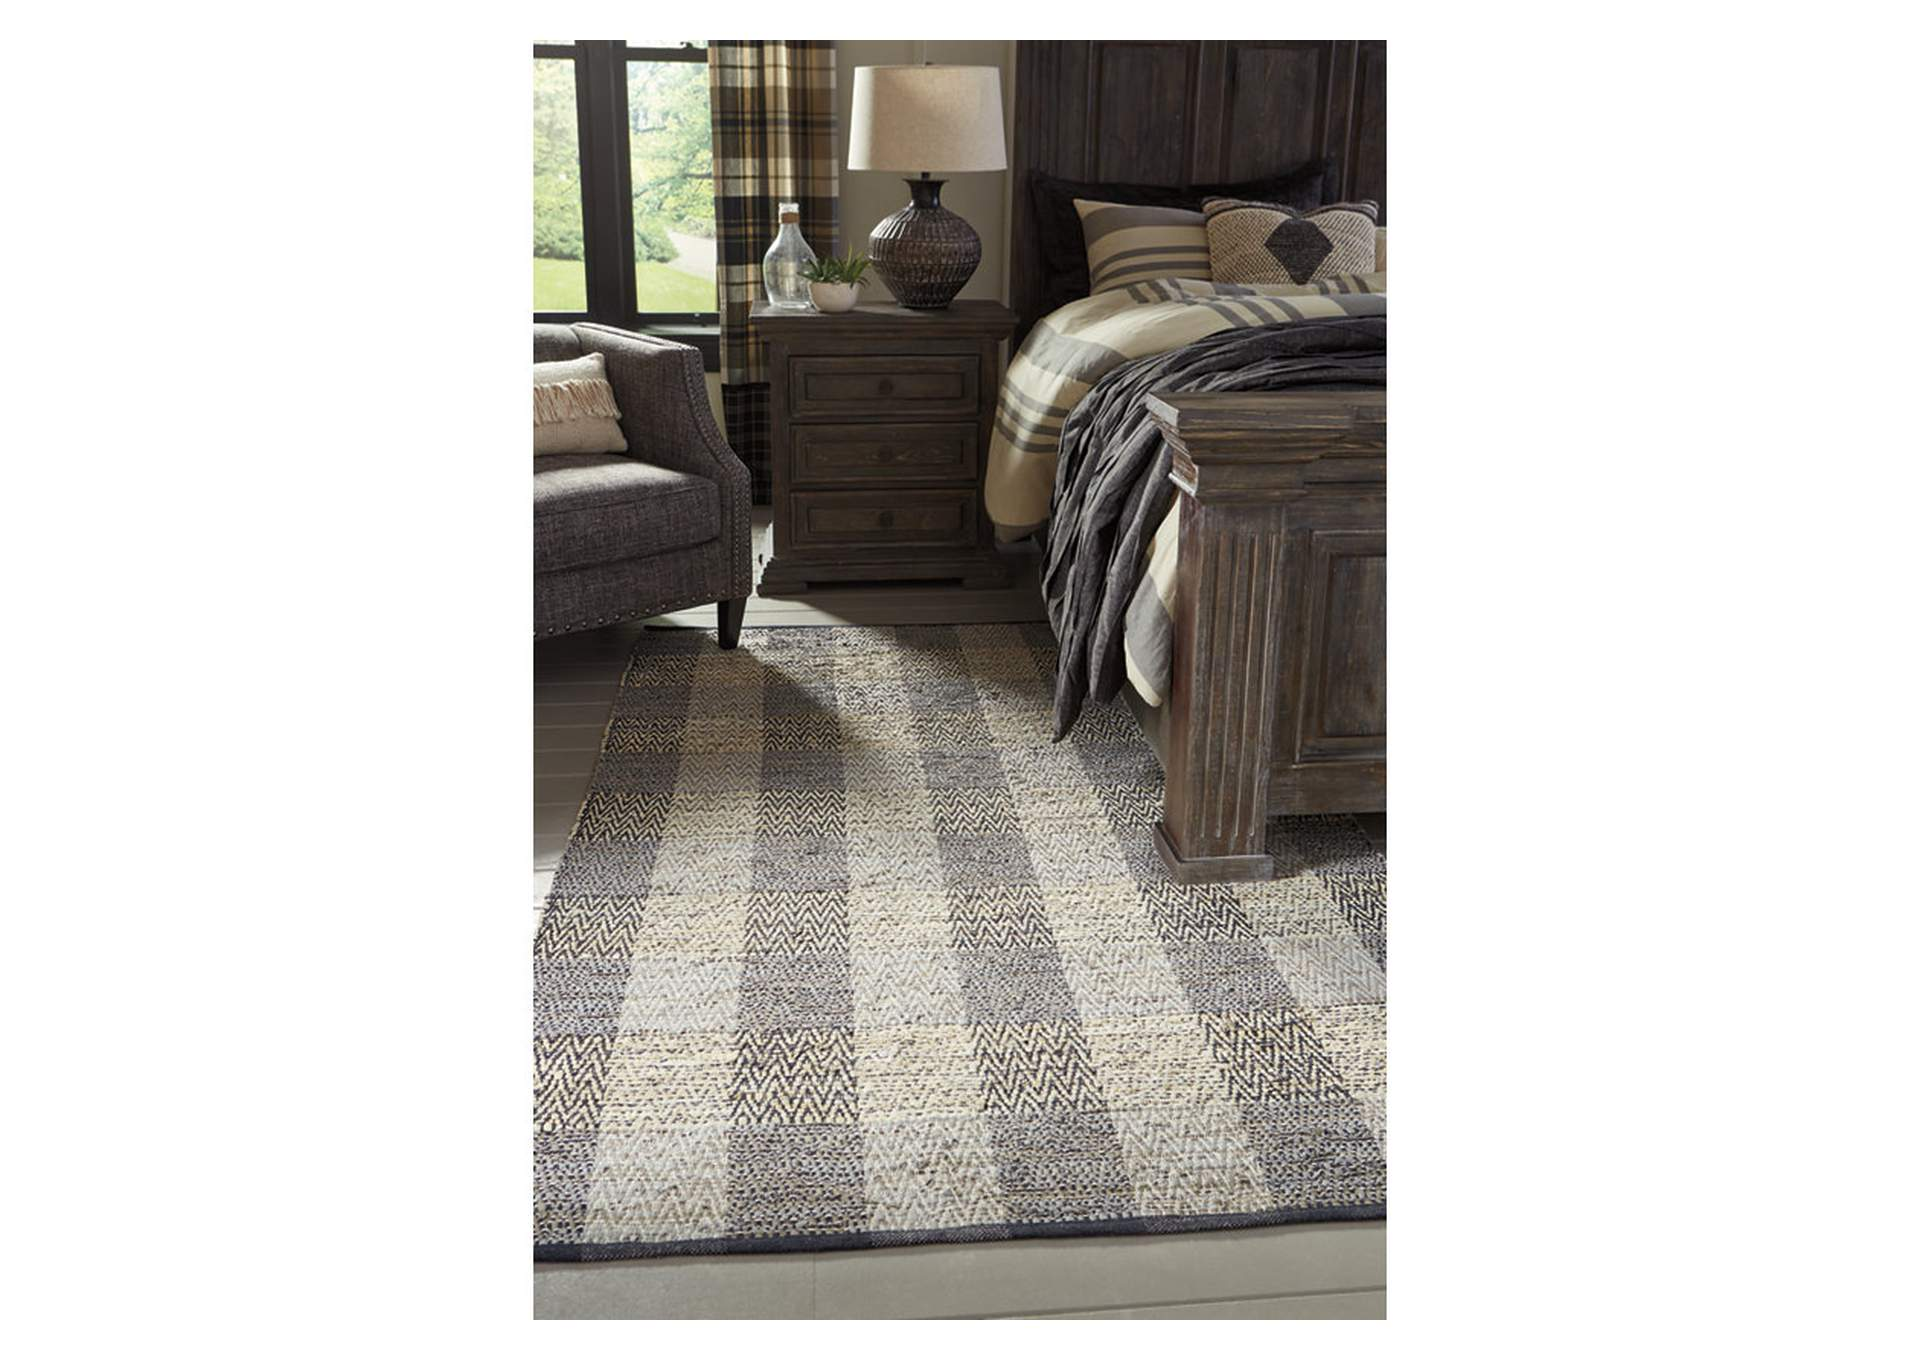 Christoff Gray Large Rug,Signature Design By Ashley